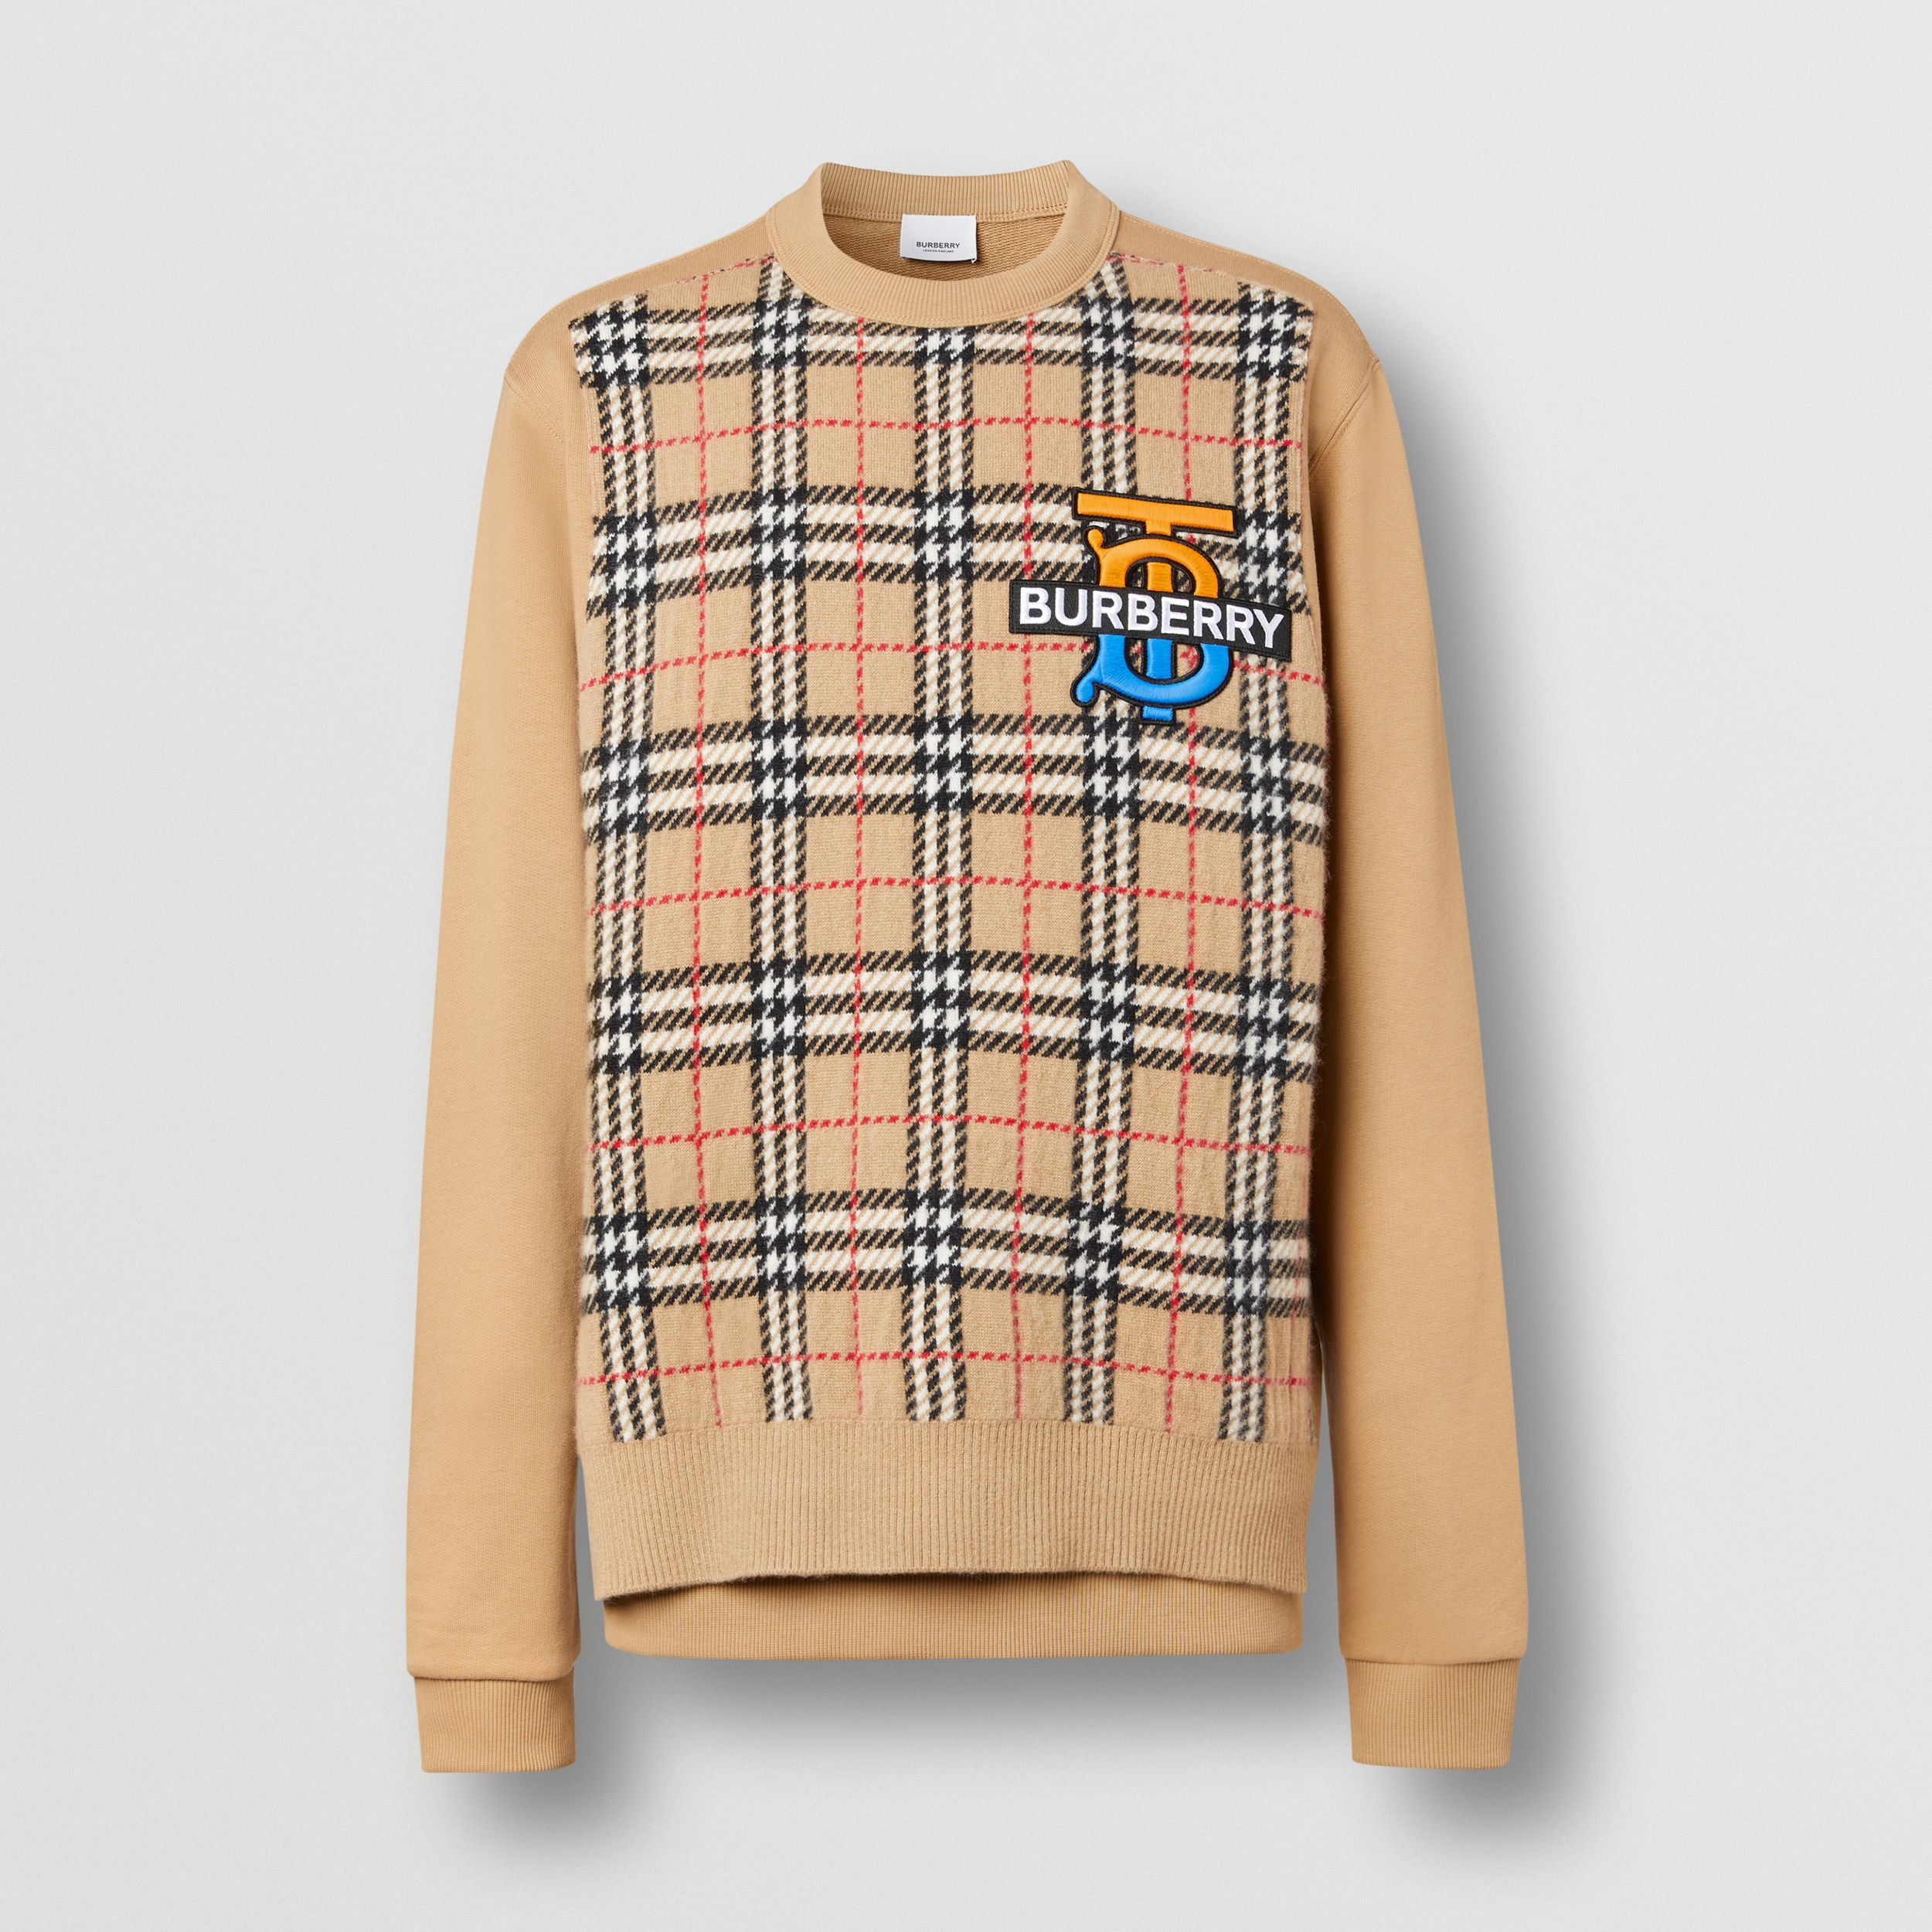 Monogram Motif Check Cashmere Panel Sweatshirt in Archive Beige - Men | Burberry - 4